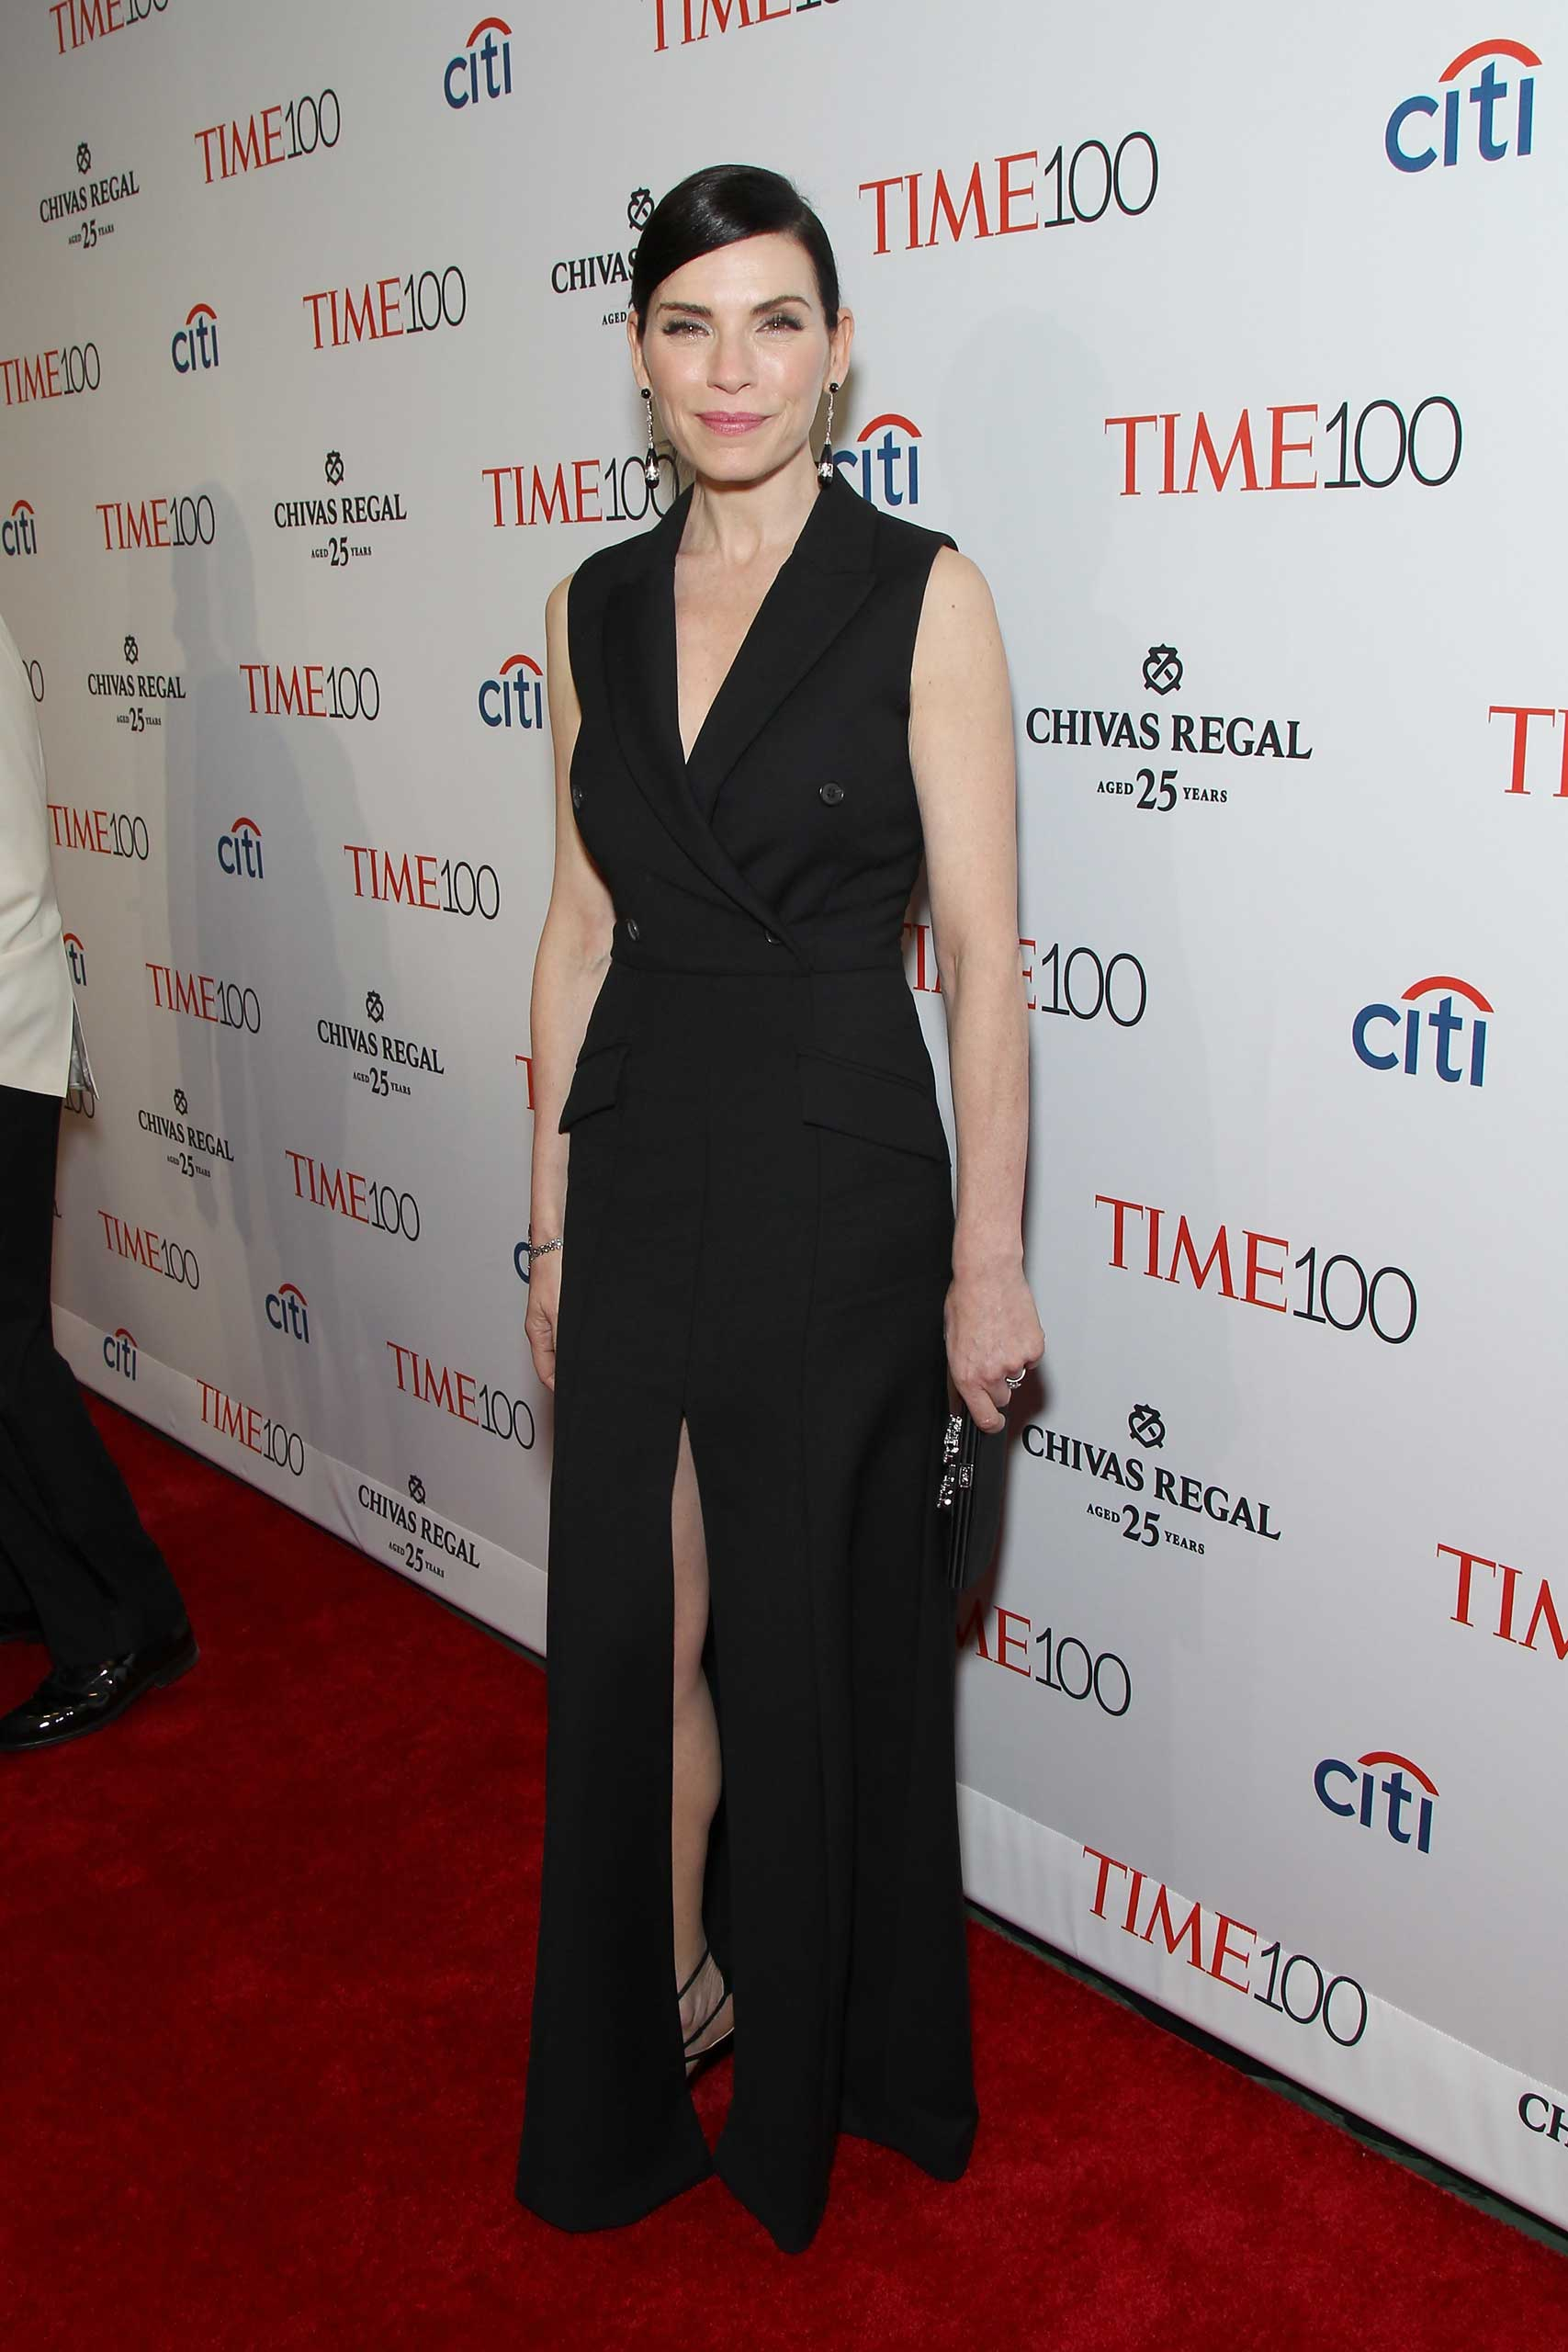 Julianna Margulies attends the TIME 100 Gala at Jazz at Lincoln Center in New York City on Apr. 21, 2015.